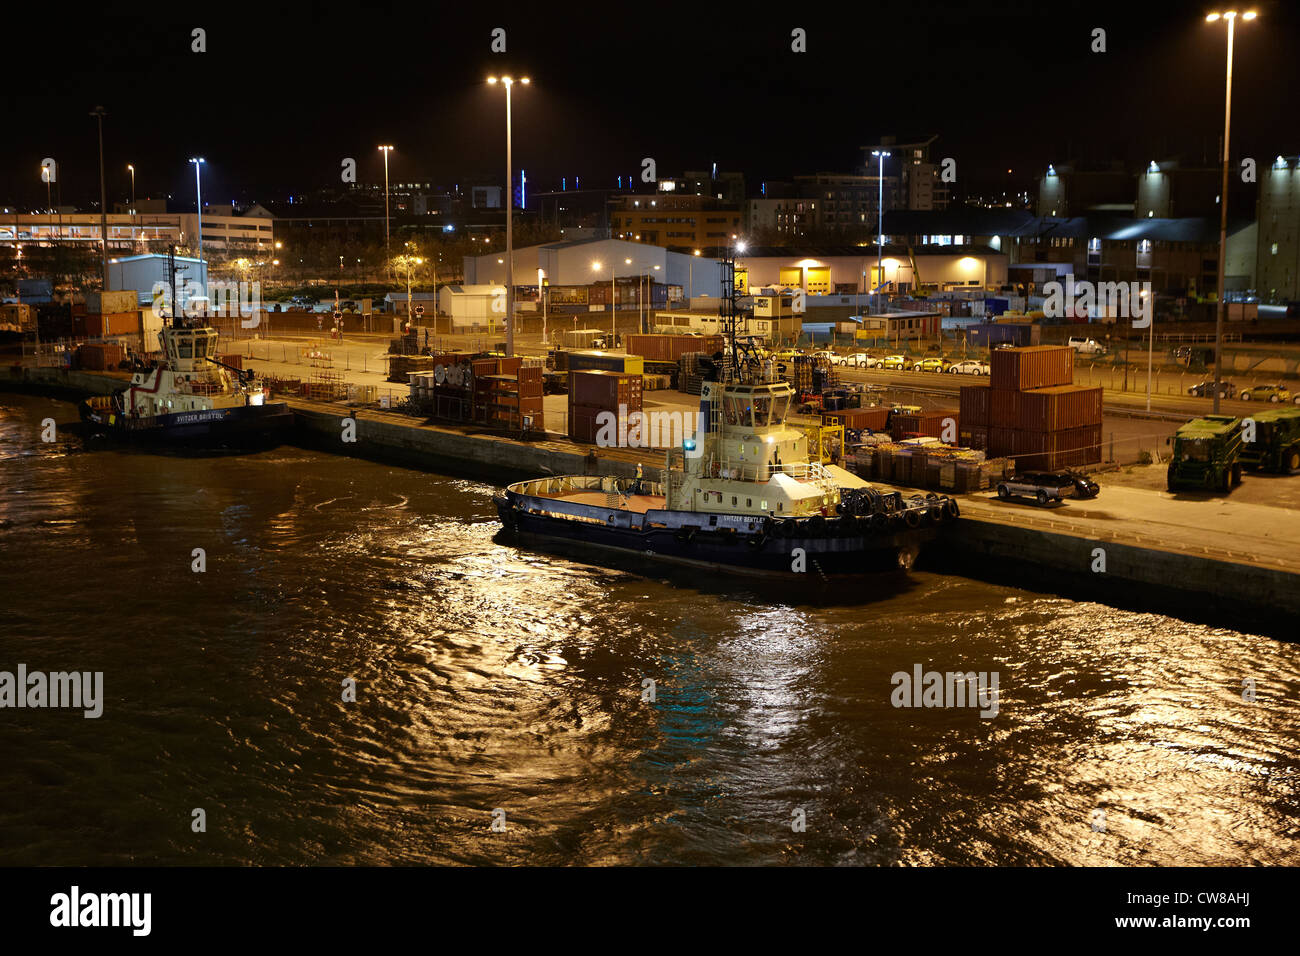 Svitzer Bentley Tug at Southampton at night - Stock Image